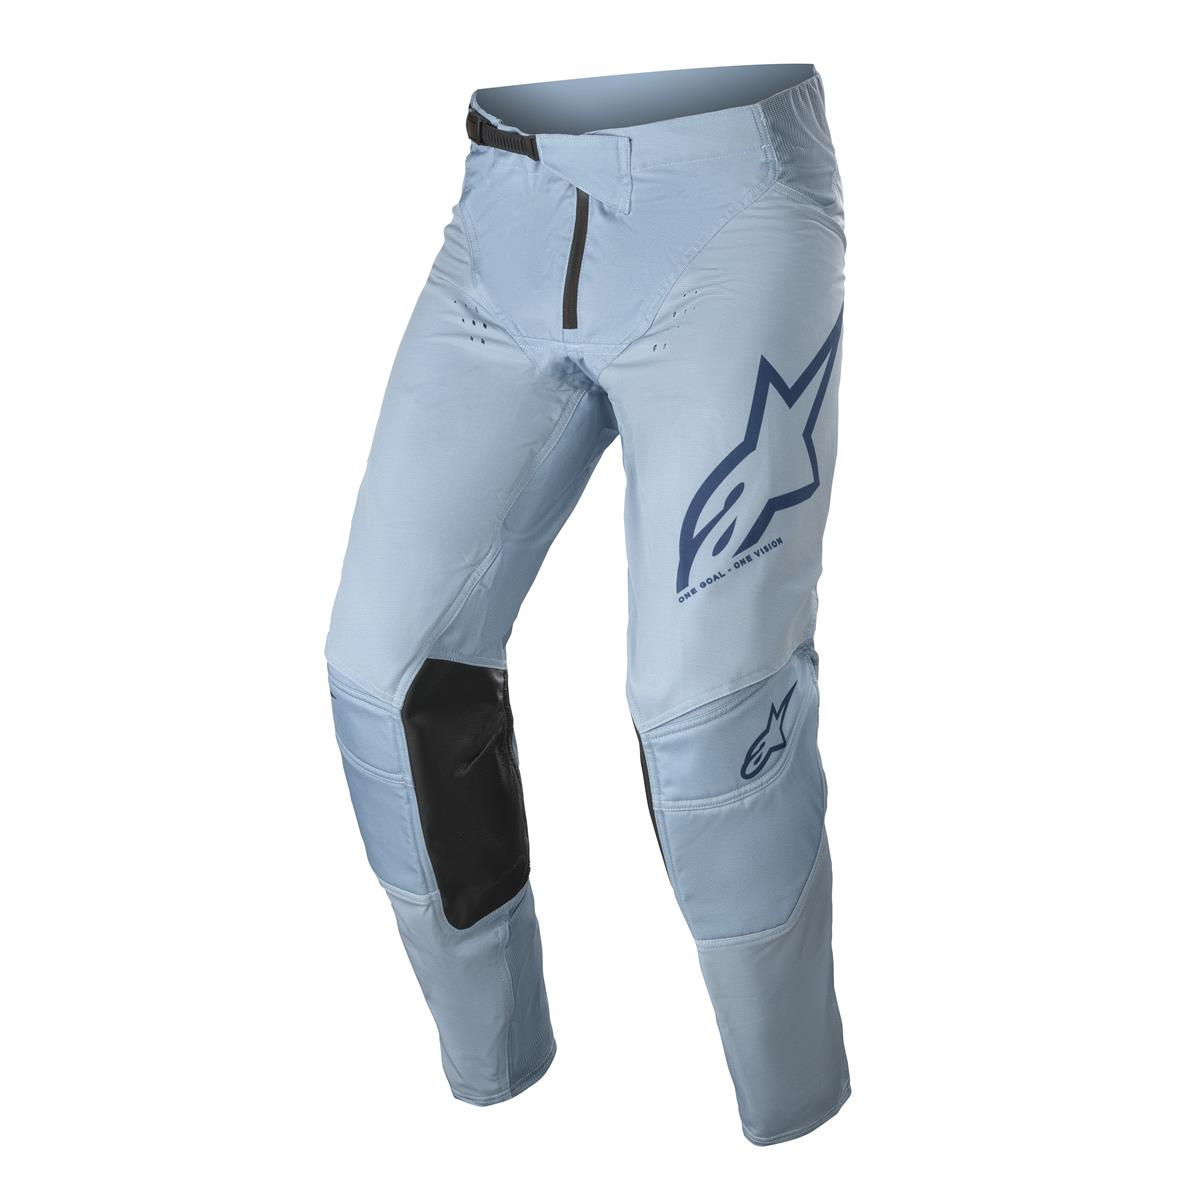 3721021 72222021 Alpinestars Techstar Factory Pant Powder Blue Dark Blue  MotoCross Broek Hose Pantalon